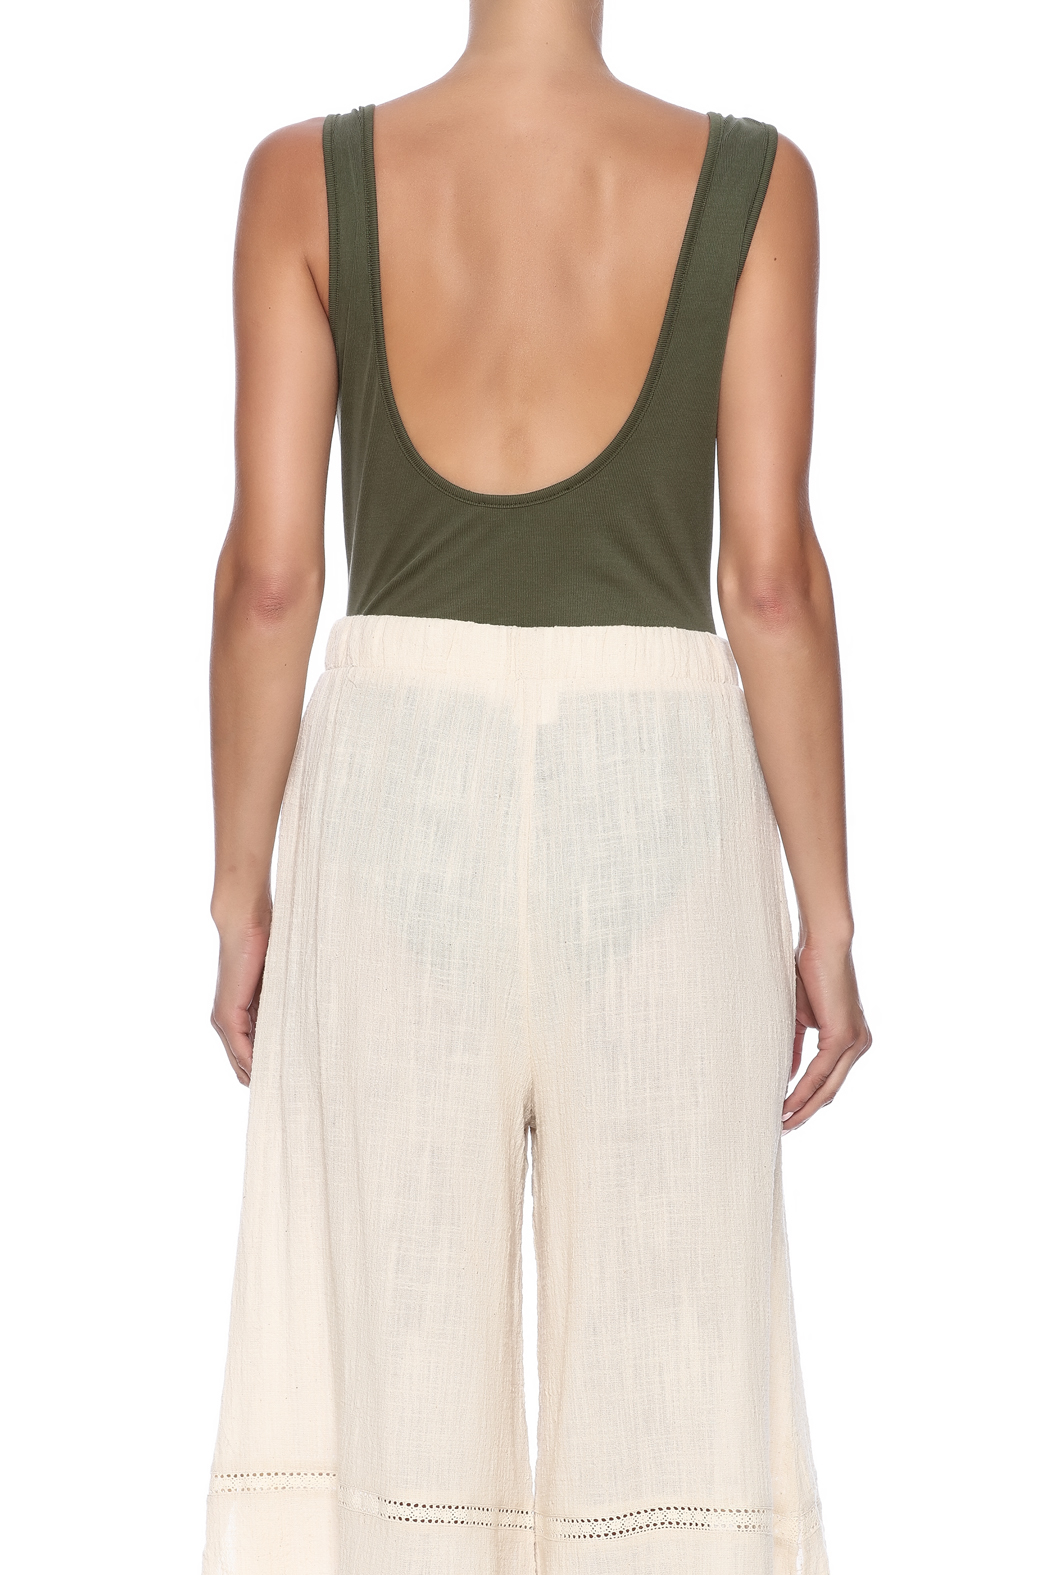 Audrey 3+1 Plunge Neck Bodysuit - Back Cropped Image